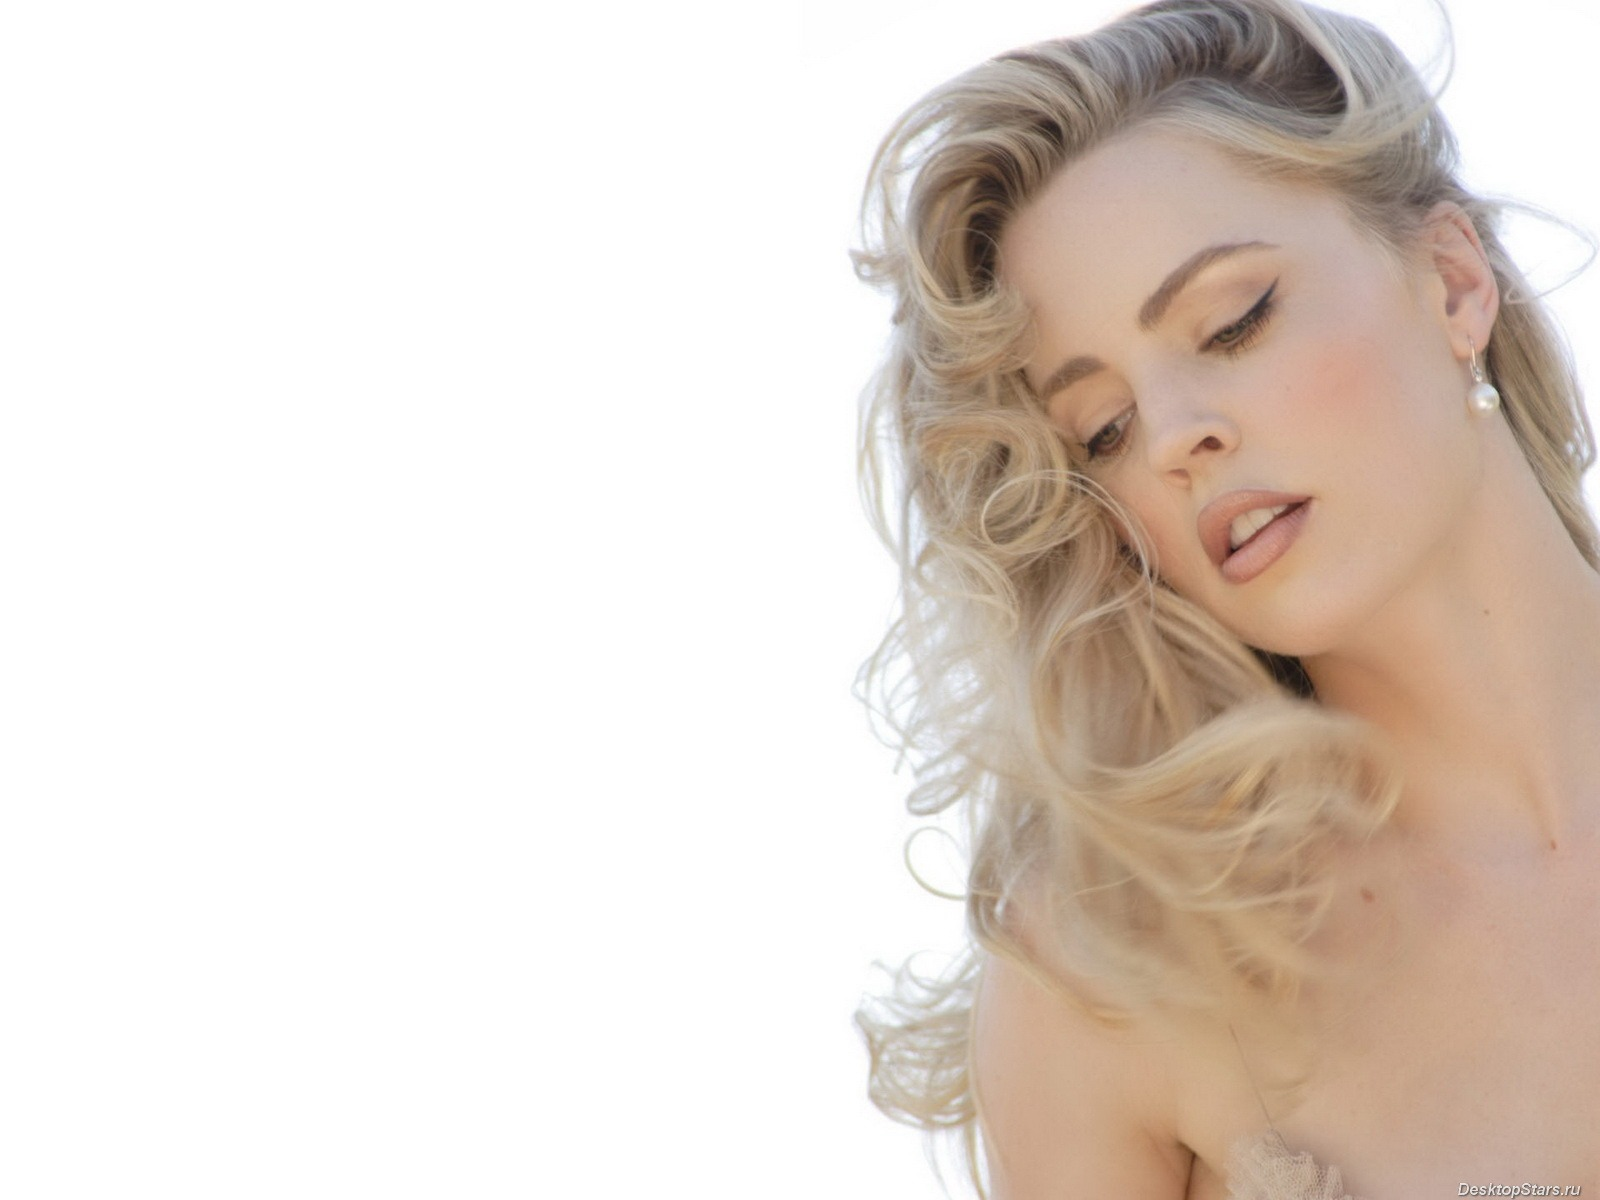 Melissa George #012 - 1600x1200 Wallpapers Pictures Photos Images